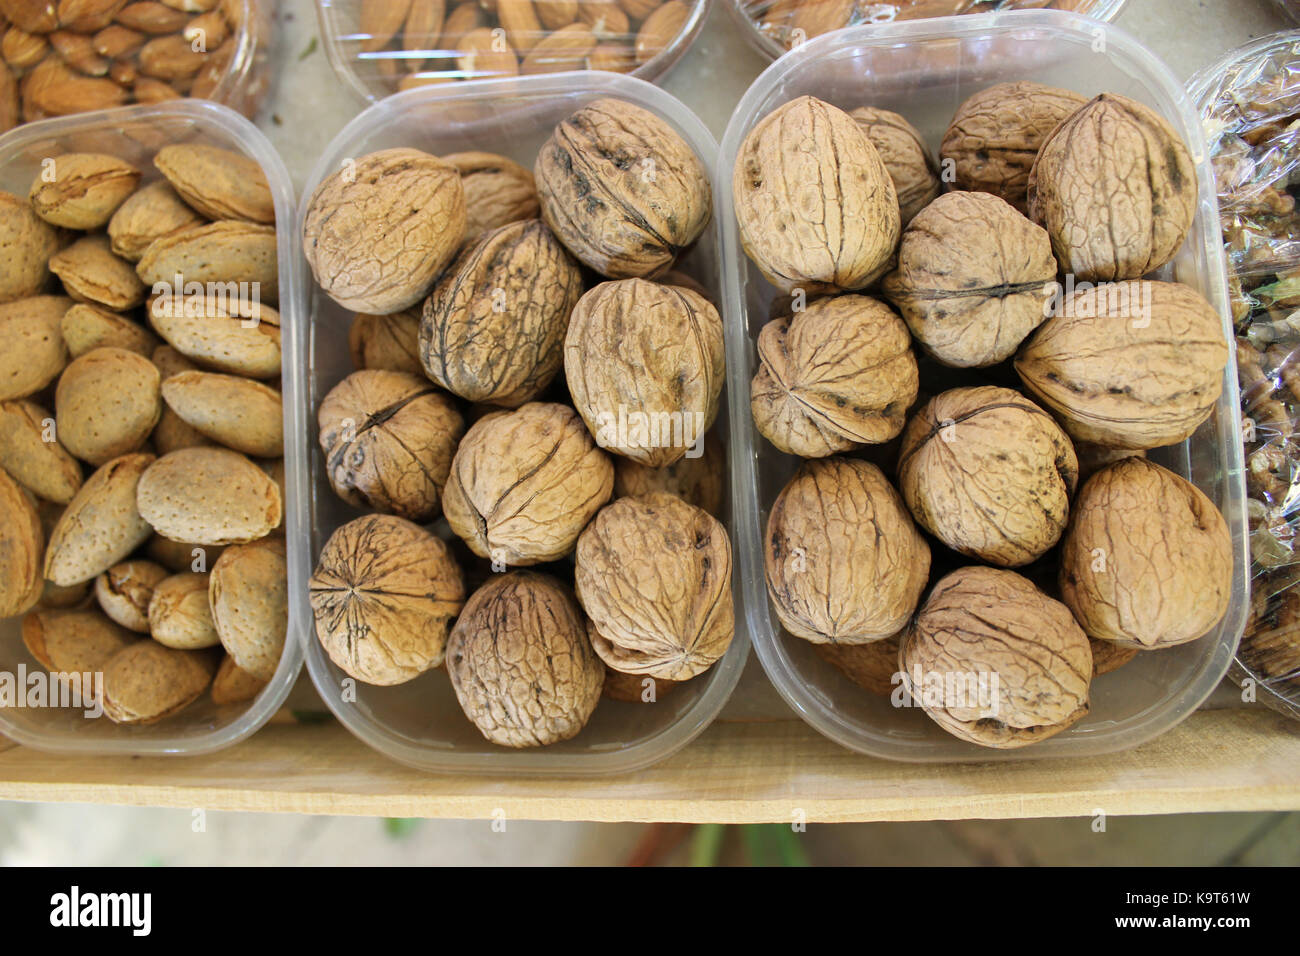 Walnuts and Almonds in plastic boxes. Market in Aix-En-Provence - Stock Image